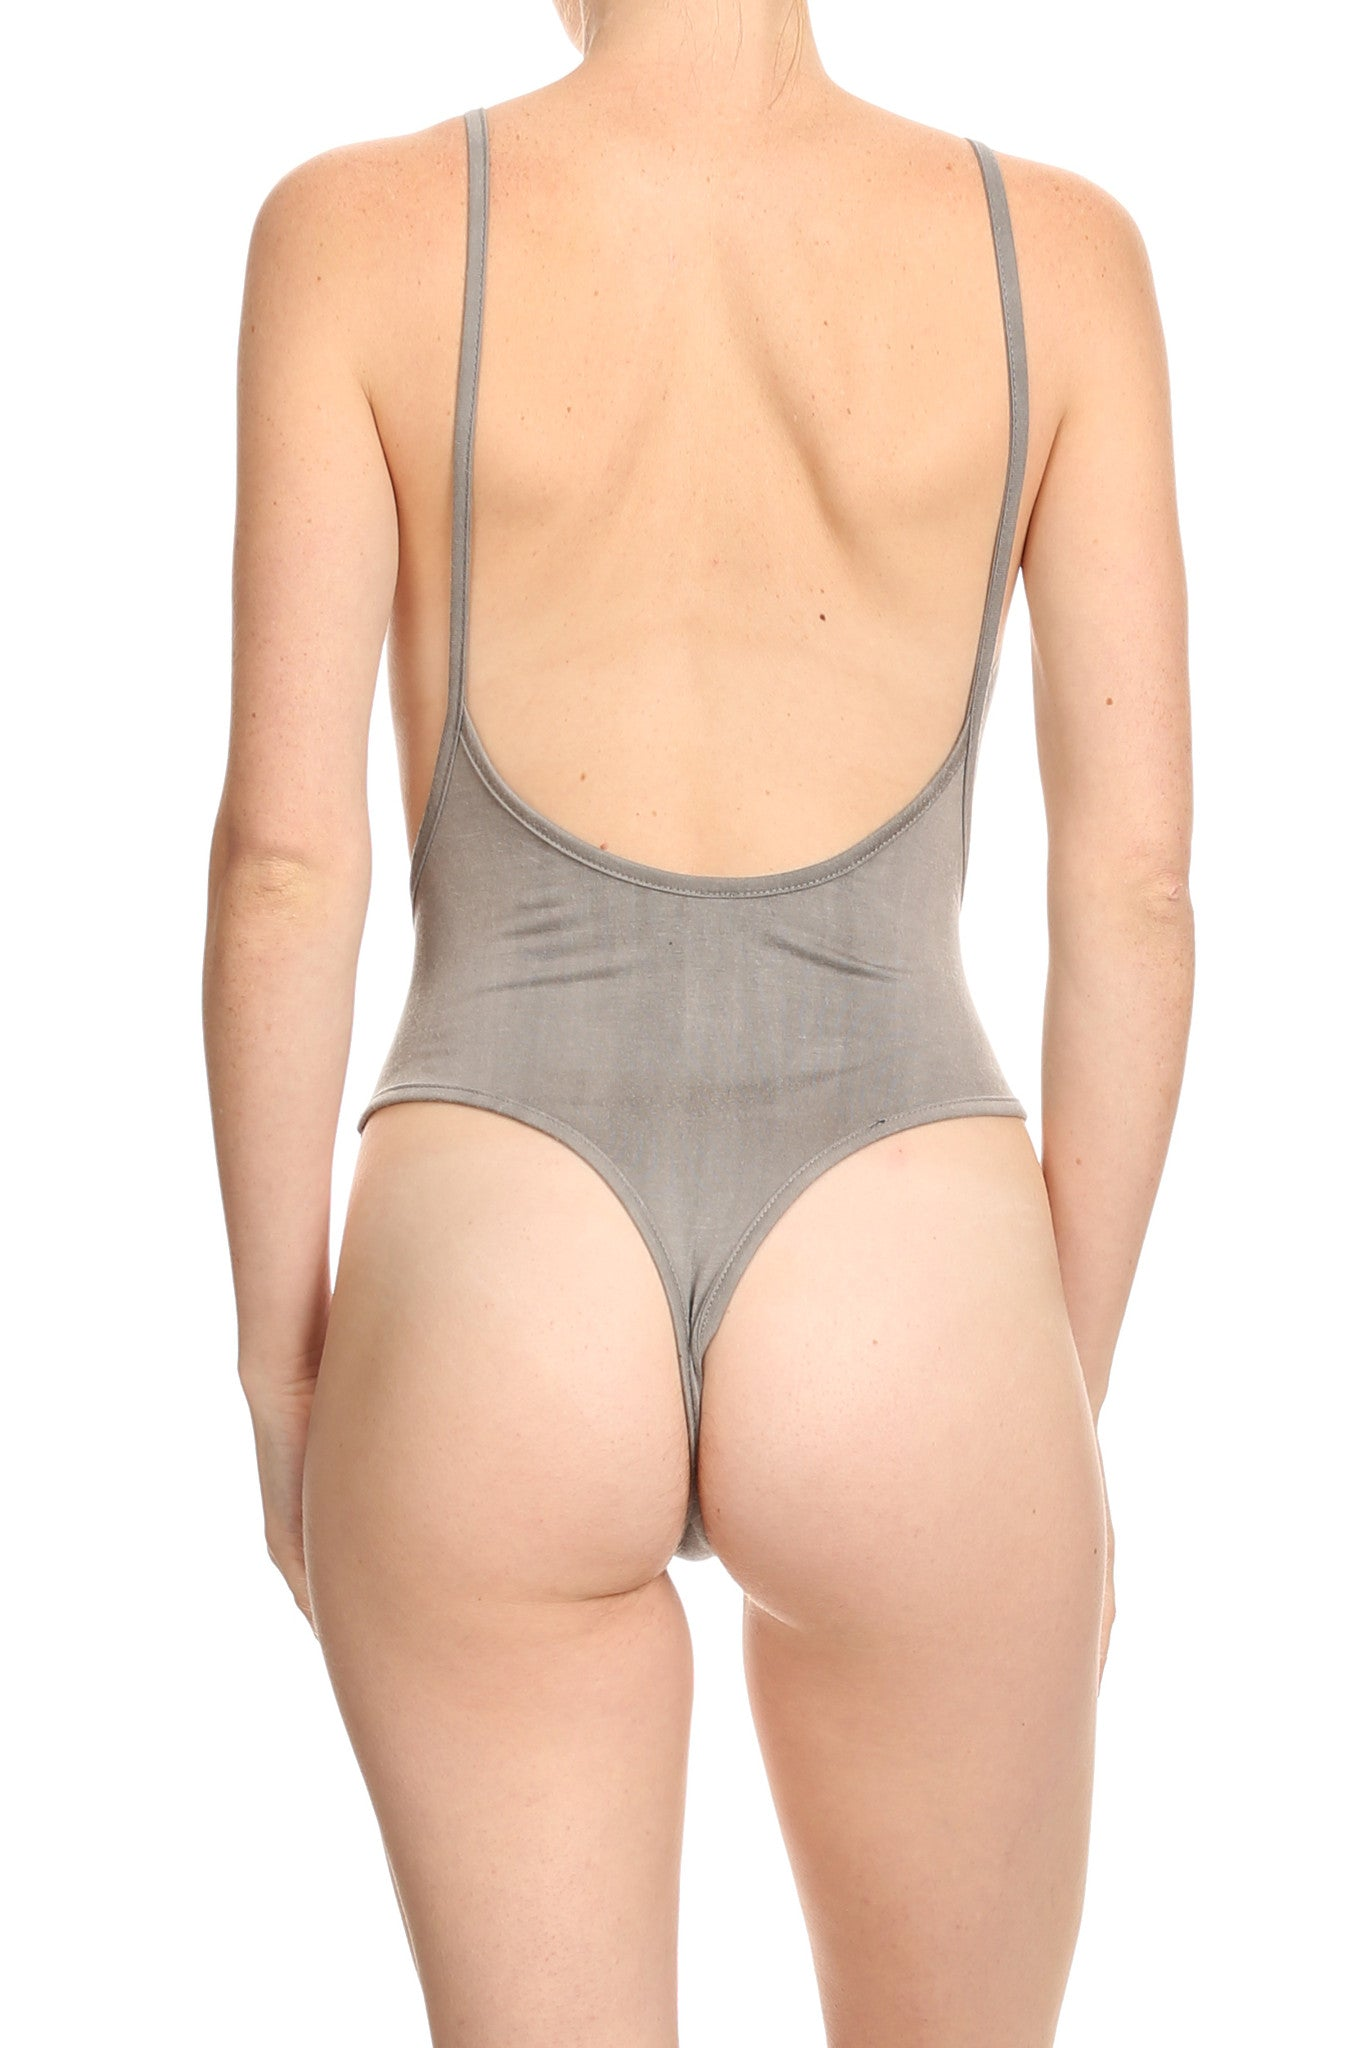 Baby Soft Heather Grey Bodysuit - POPRAGEOUS  - 5